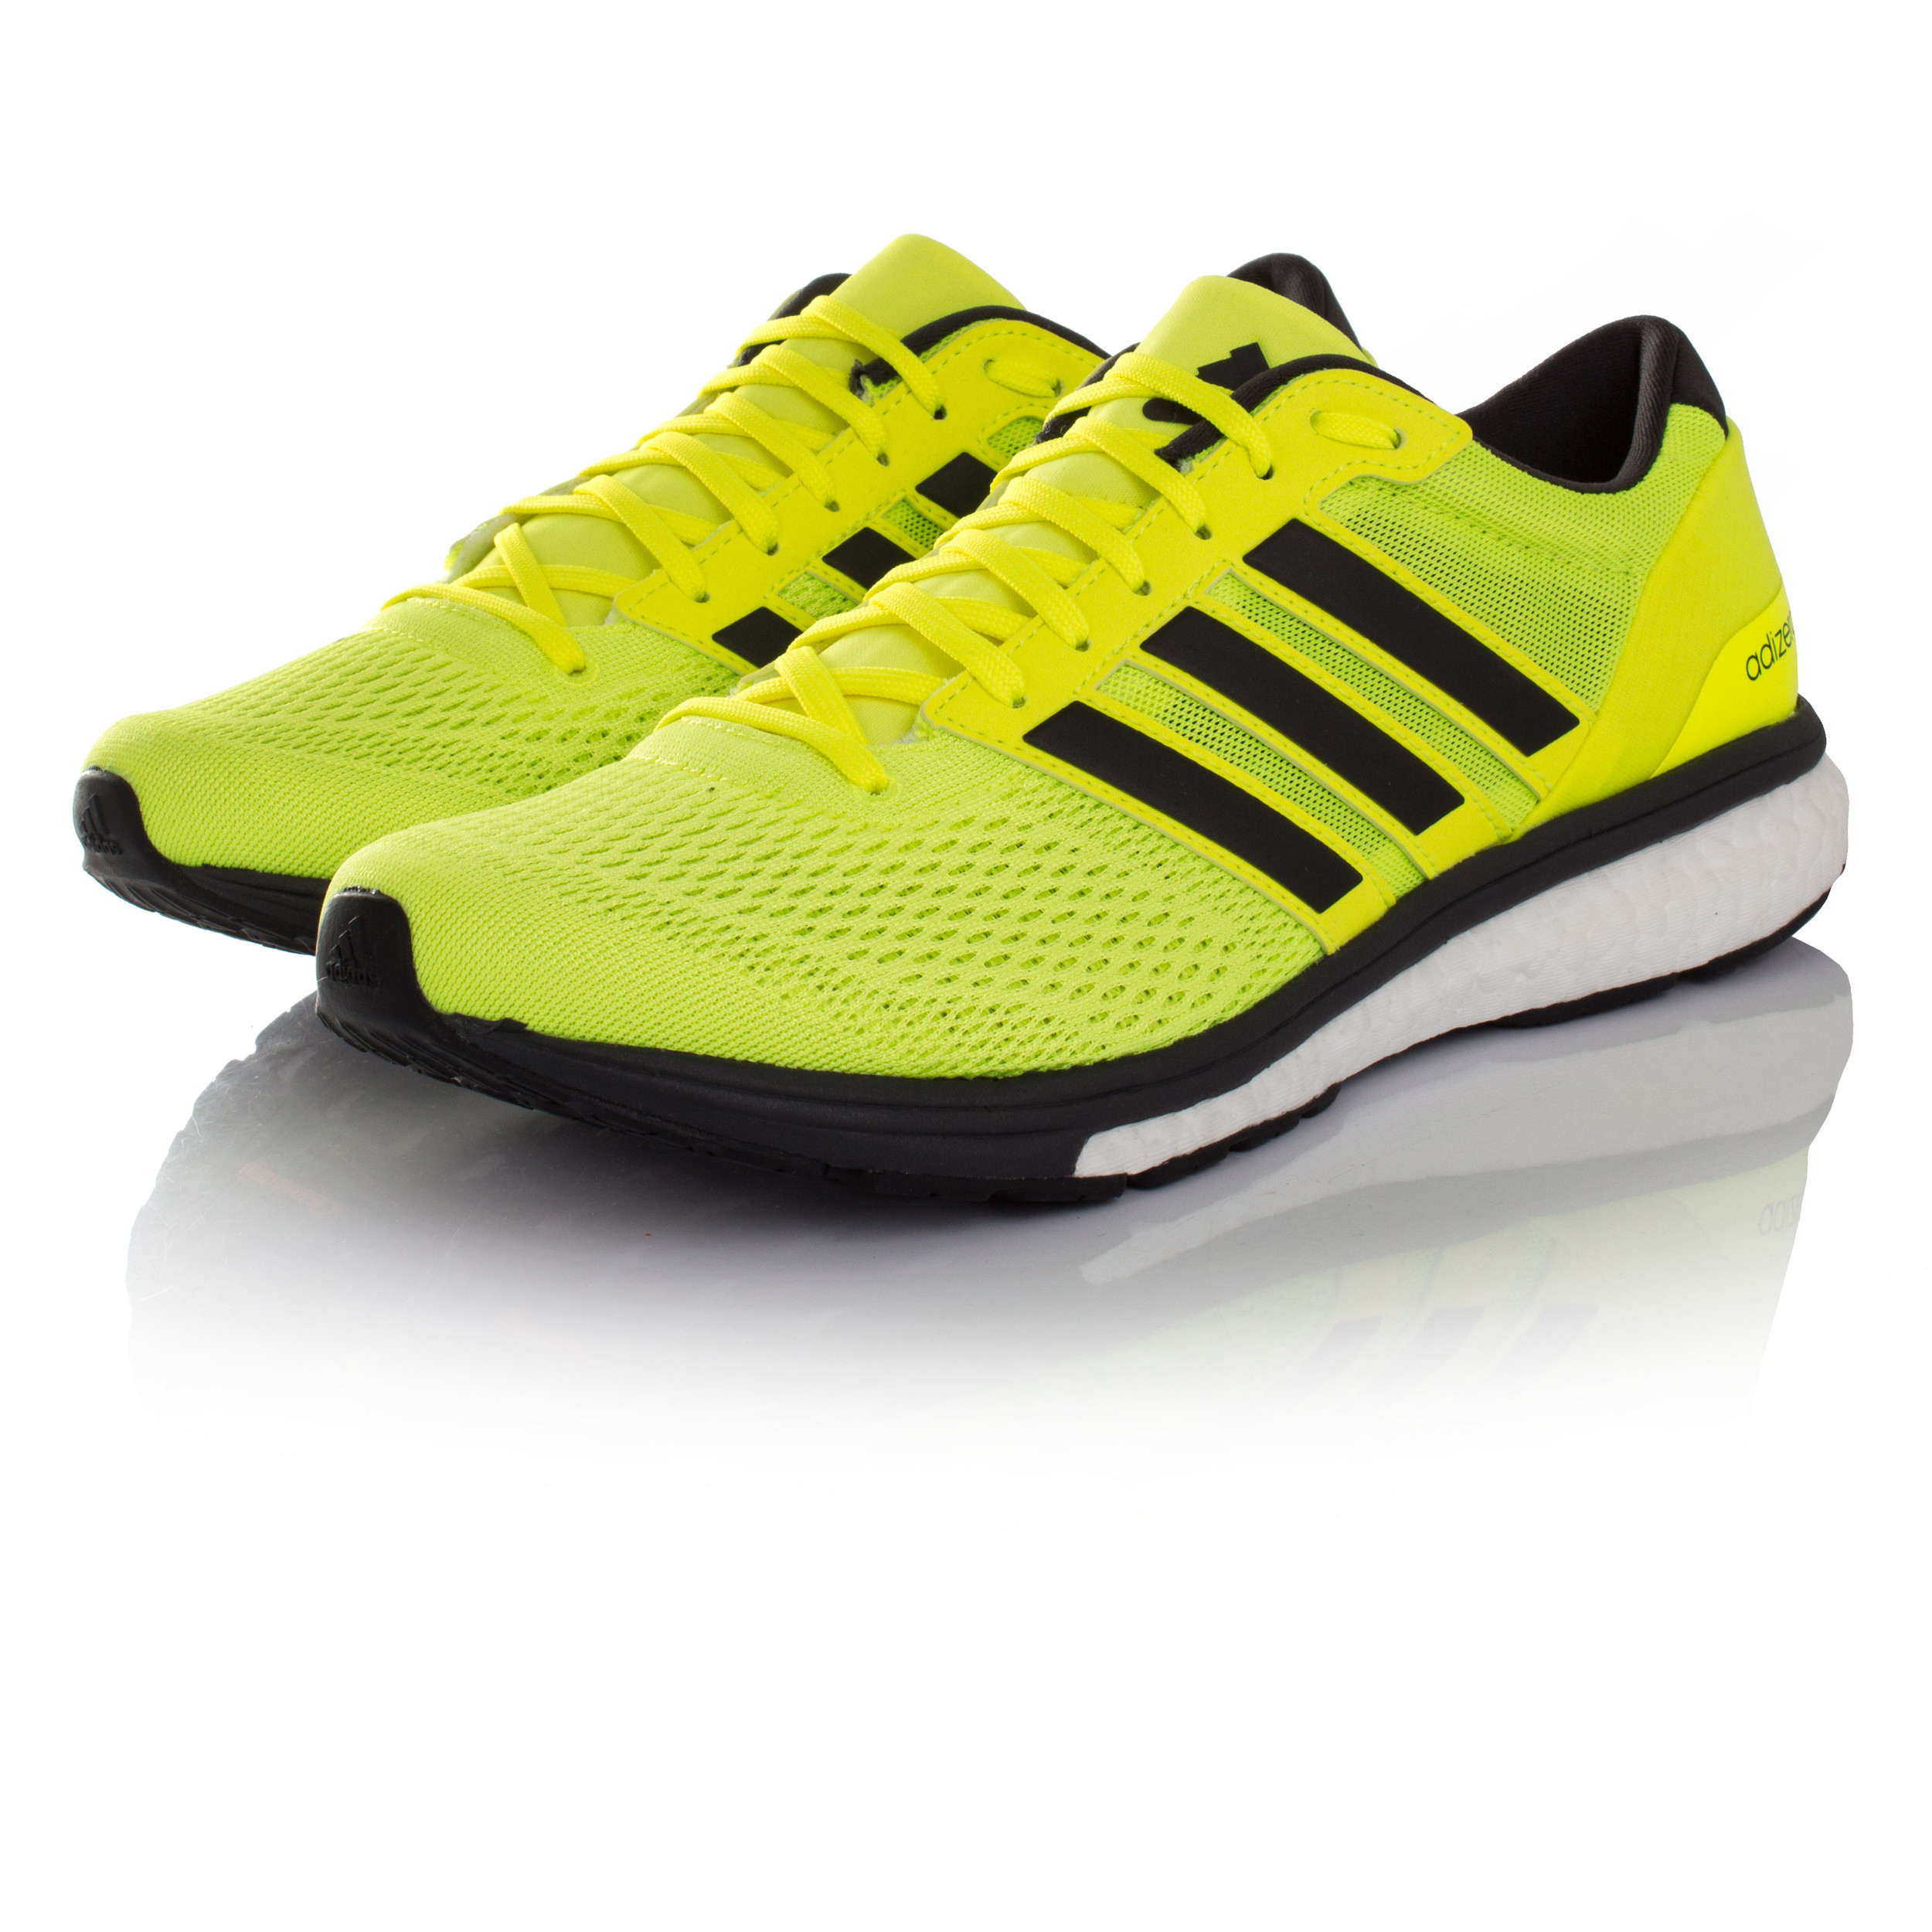 Go Running Shoes Outlet